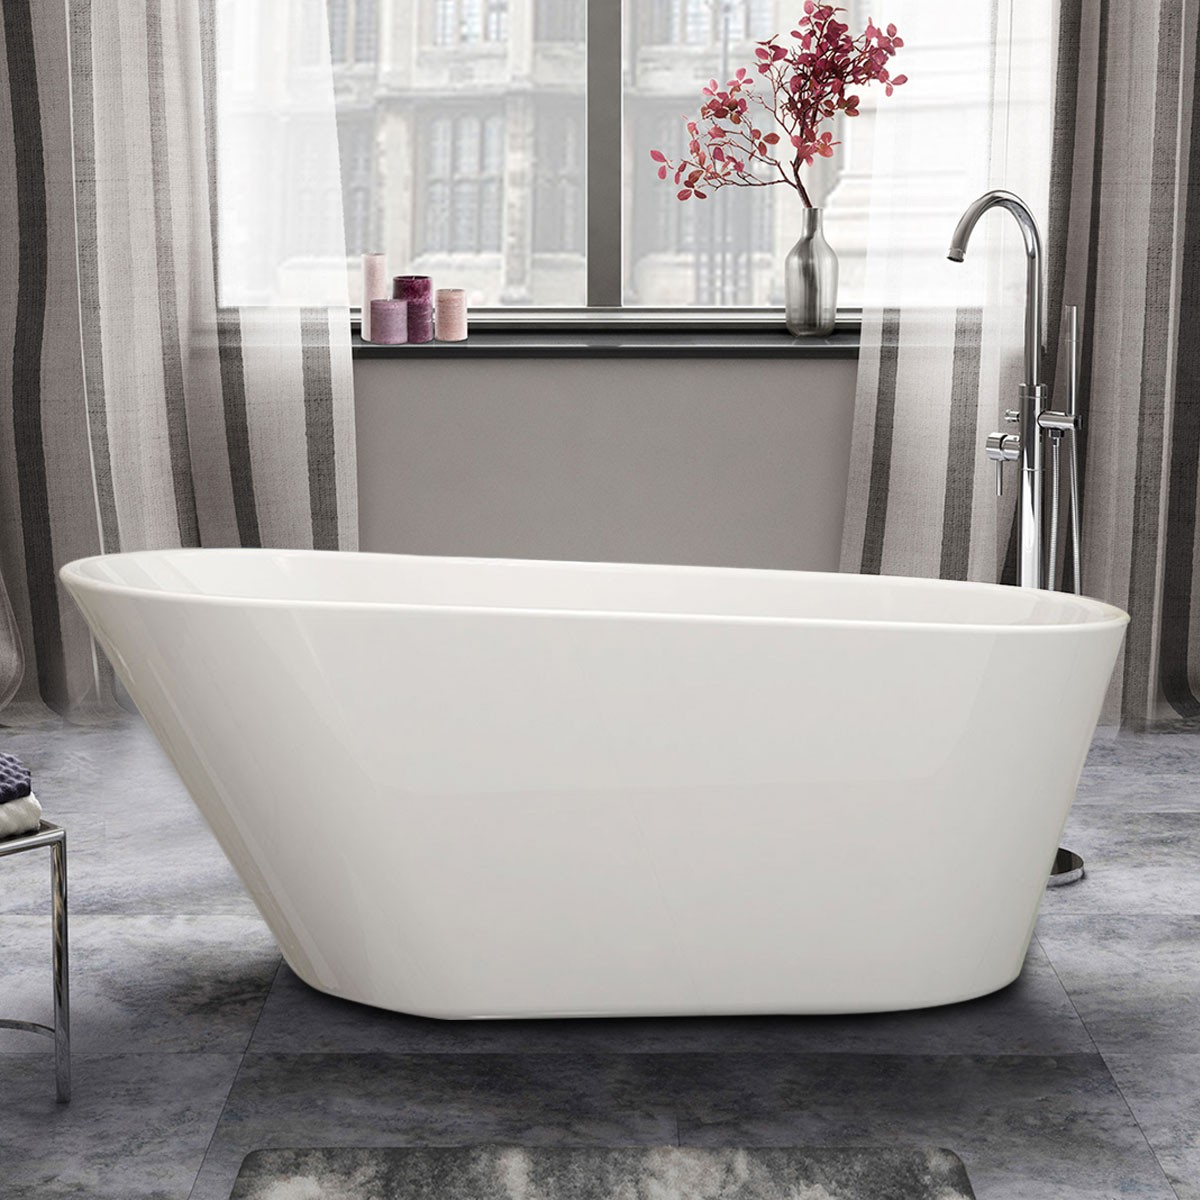 61 In White Acrylic Seamless Freestanding Bathtub (DK-1506B)